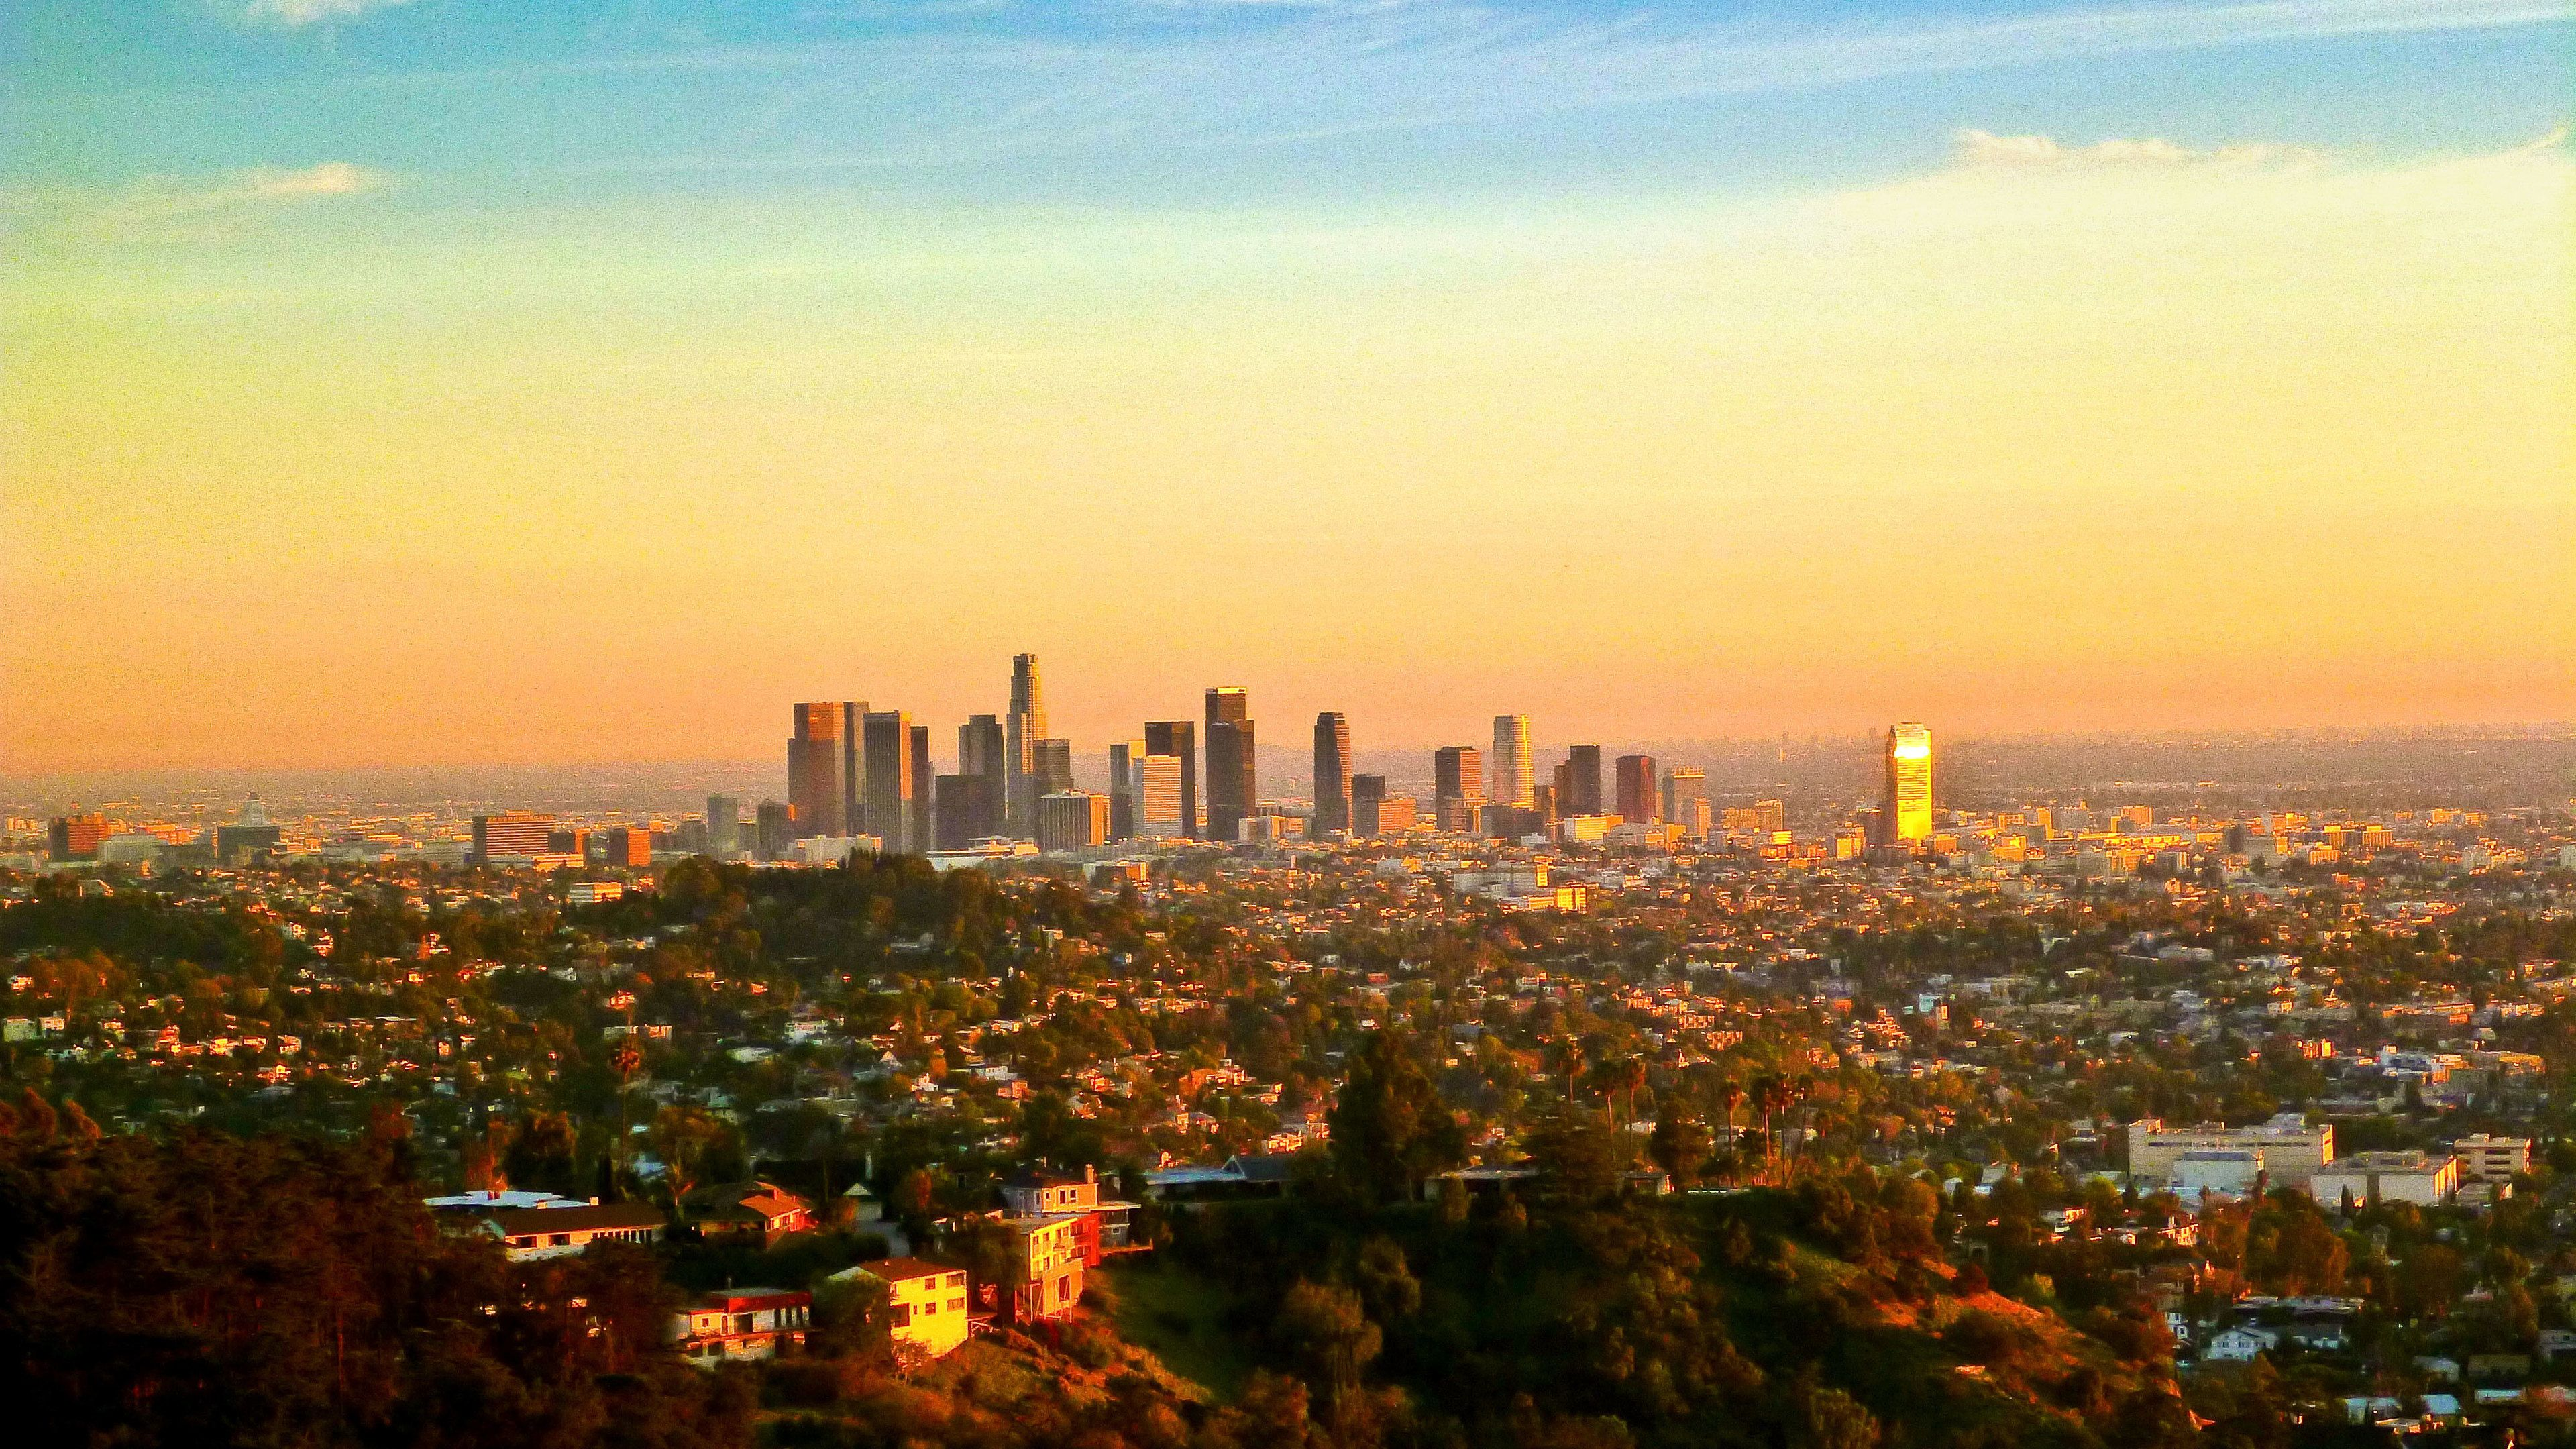 View of Los Angeles at sunset from the Hollywood Hills.